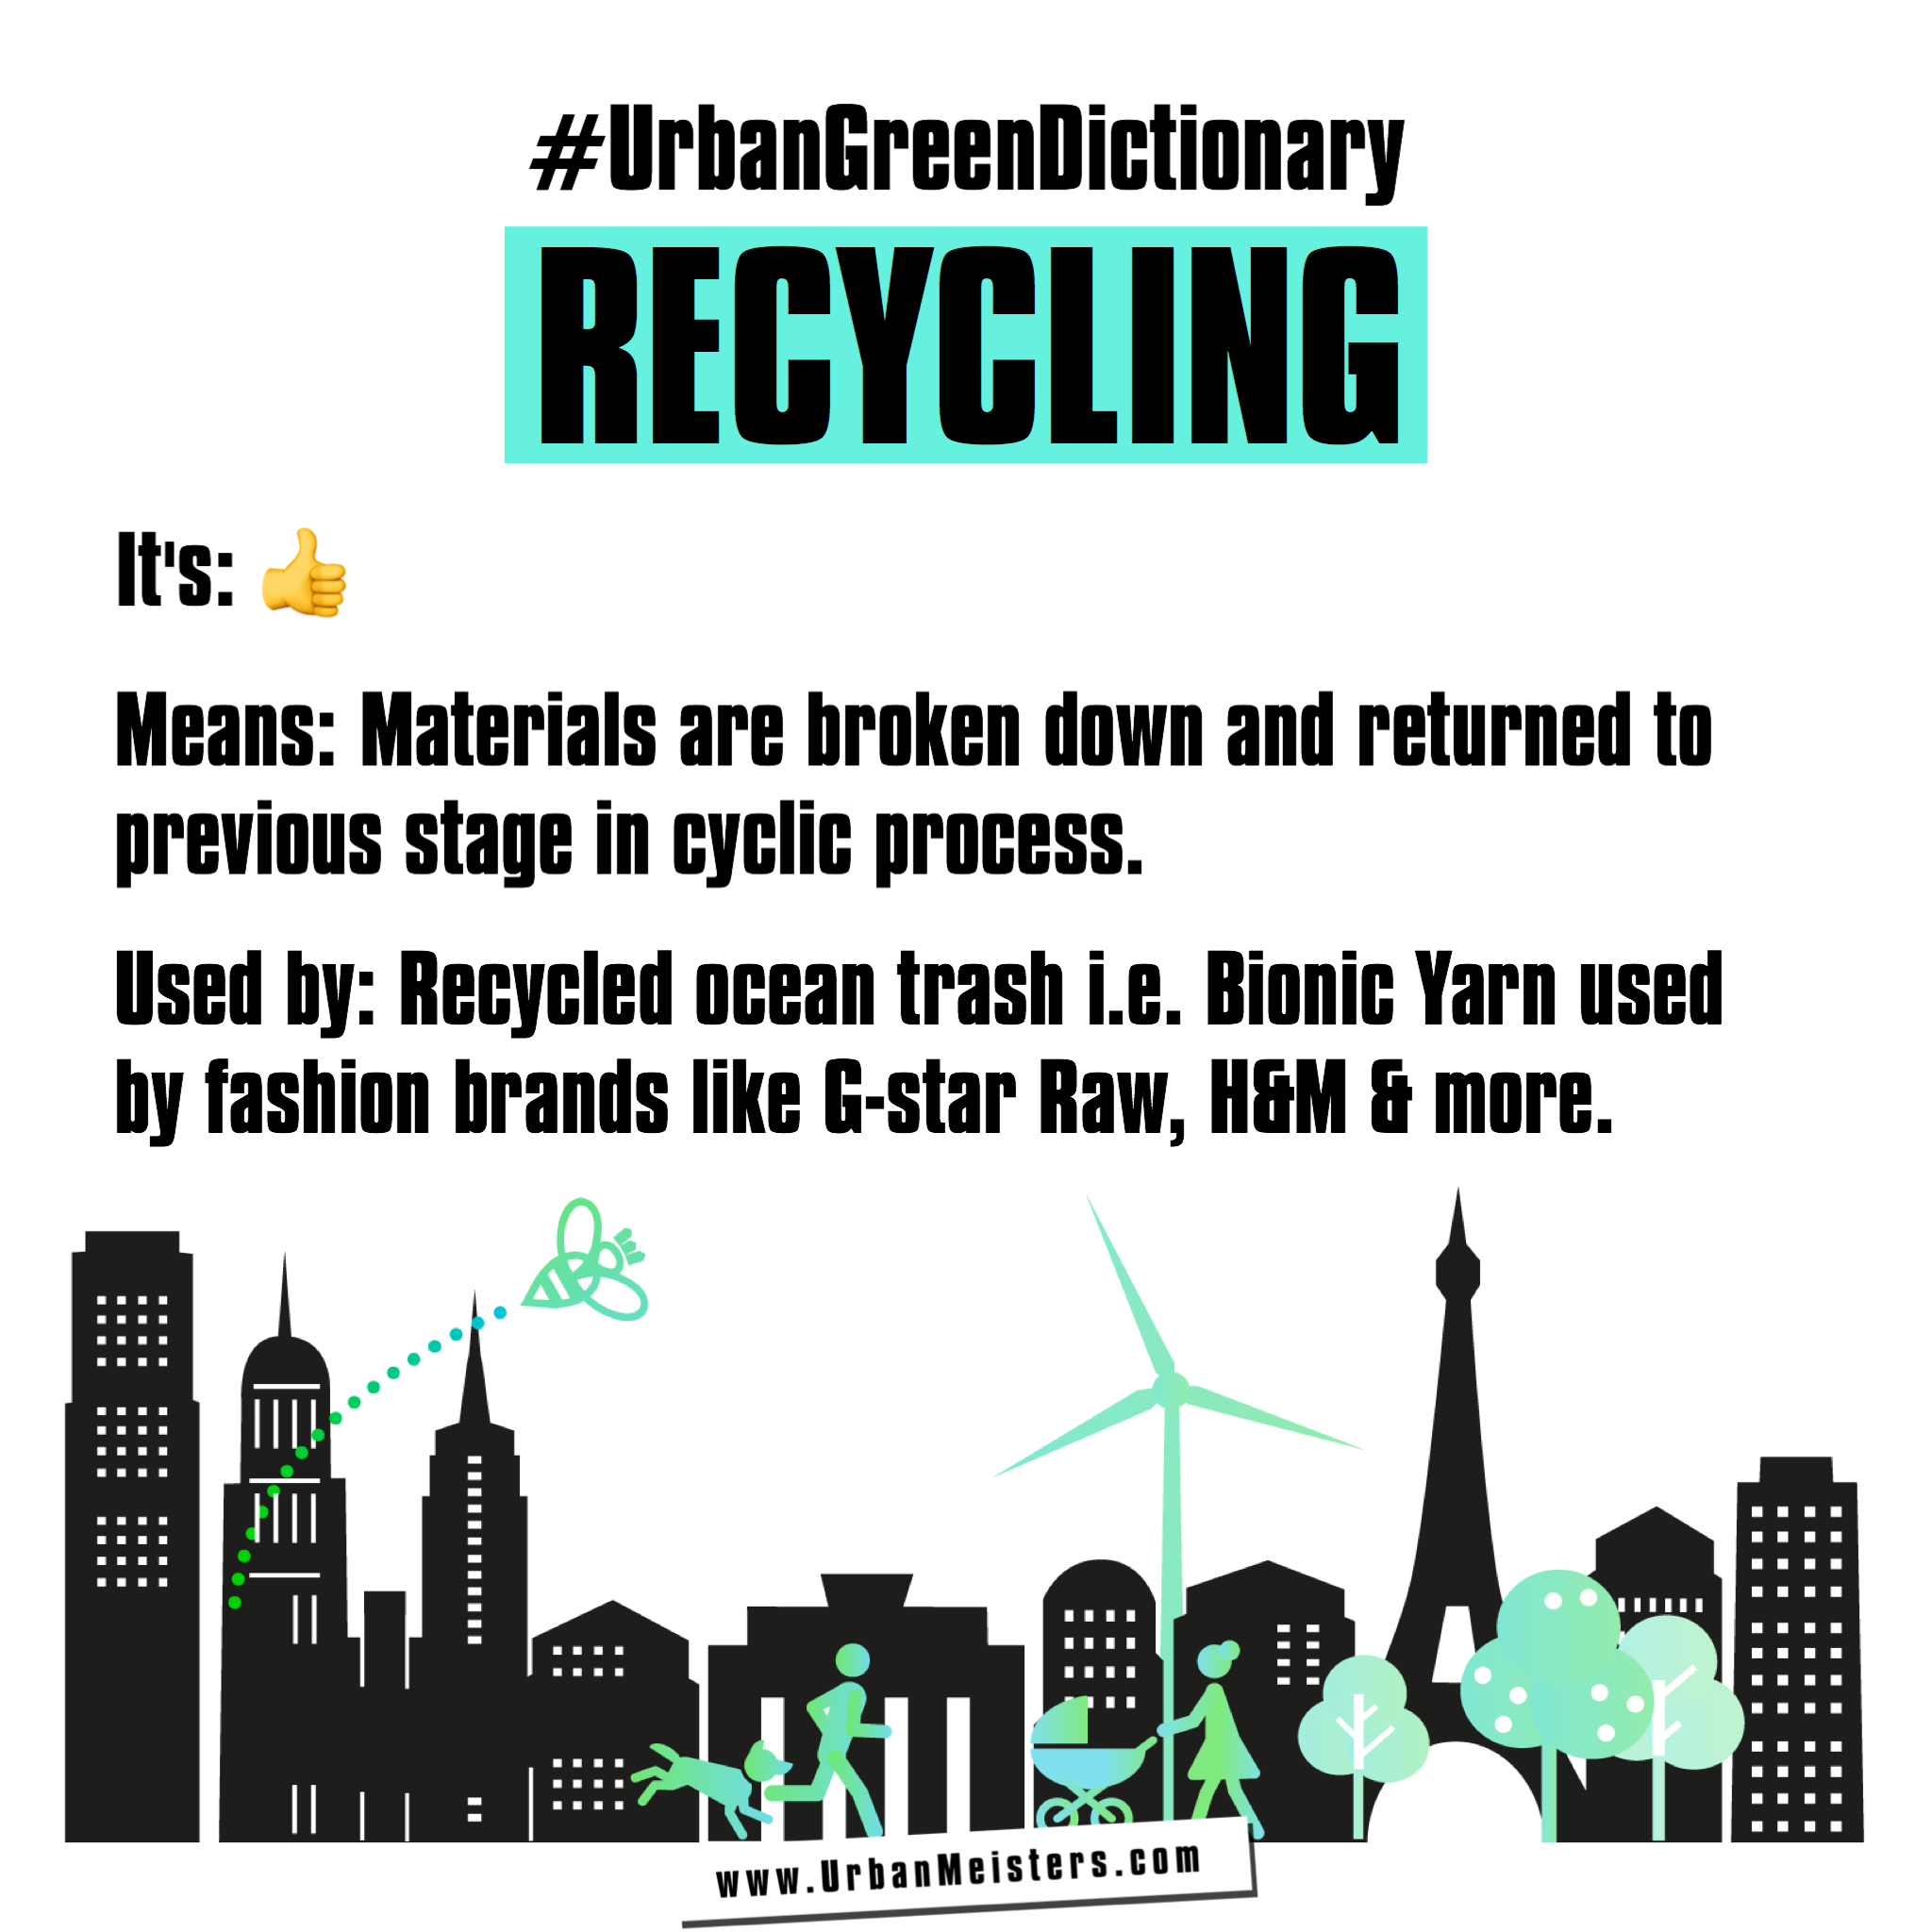 [#UrbanGreenDictionary] A guide to stay safe from urban pollution & live sustainable!